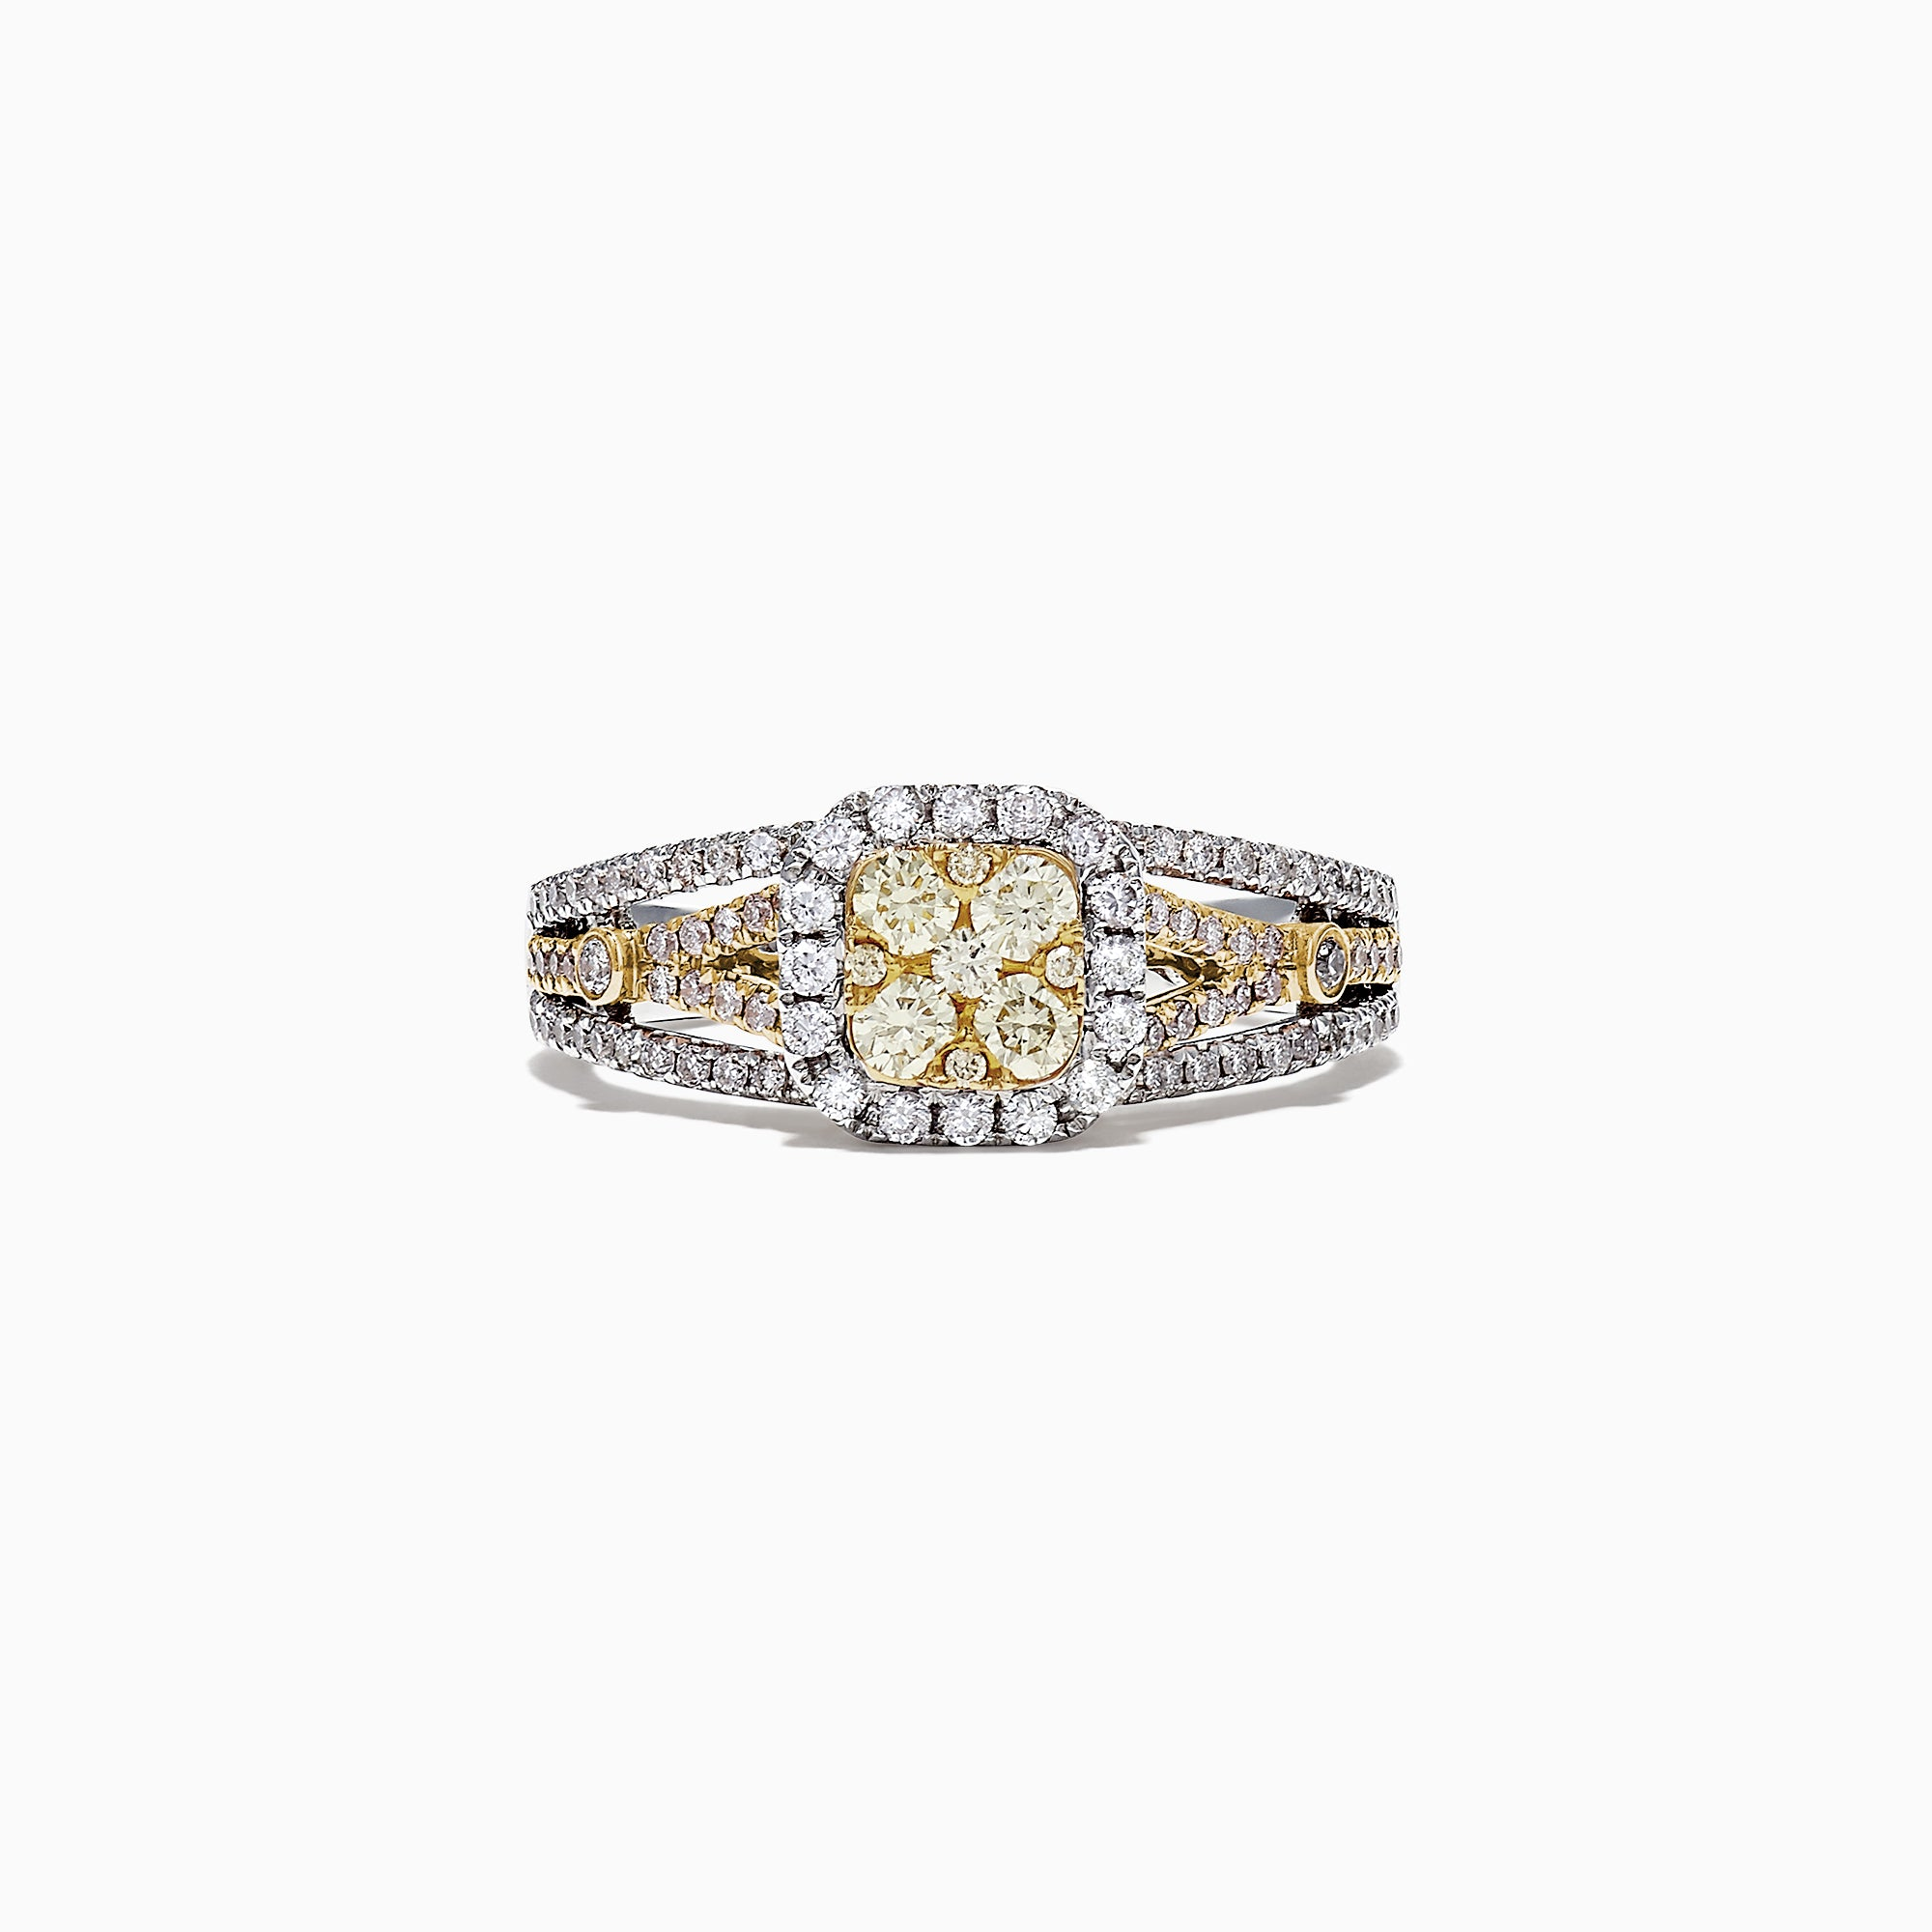 Effy Canare 14K Two-Tone Gold White and Yellow Diamond Ring, .72 TCW